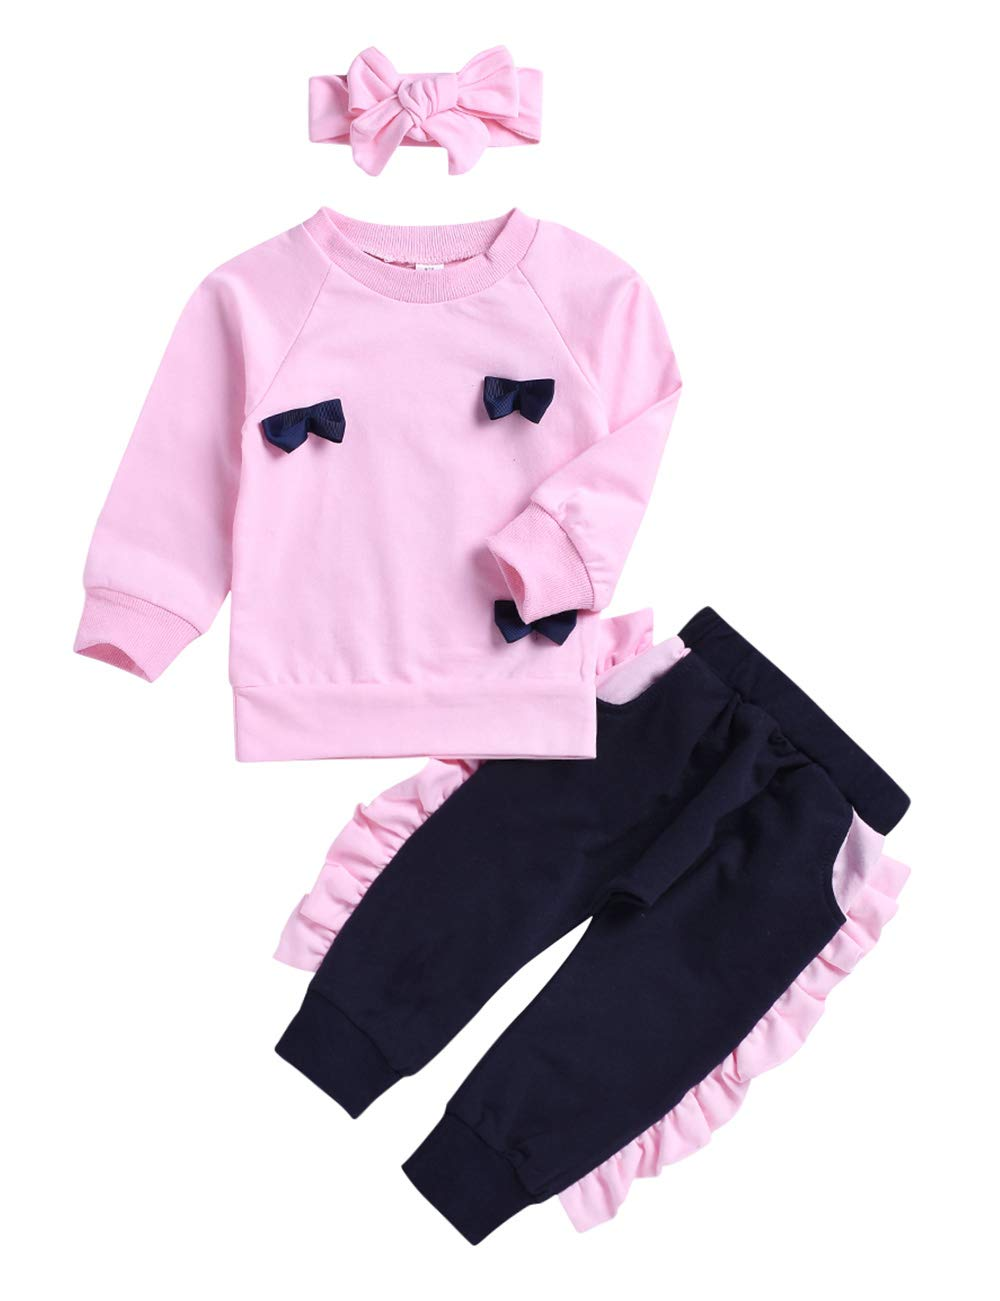 oklady Toddler Girls Clothes Outfits Flower Ruffle Top Ripped Jeans Baby Girl Fall Winter Clothes Sets